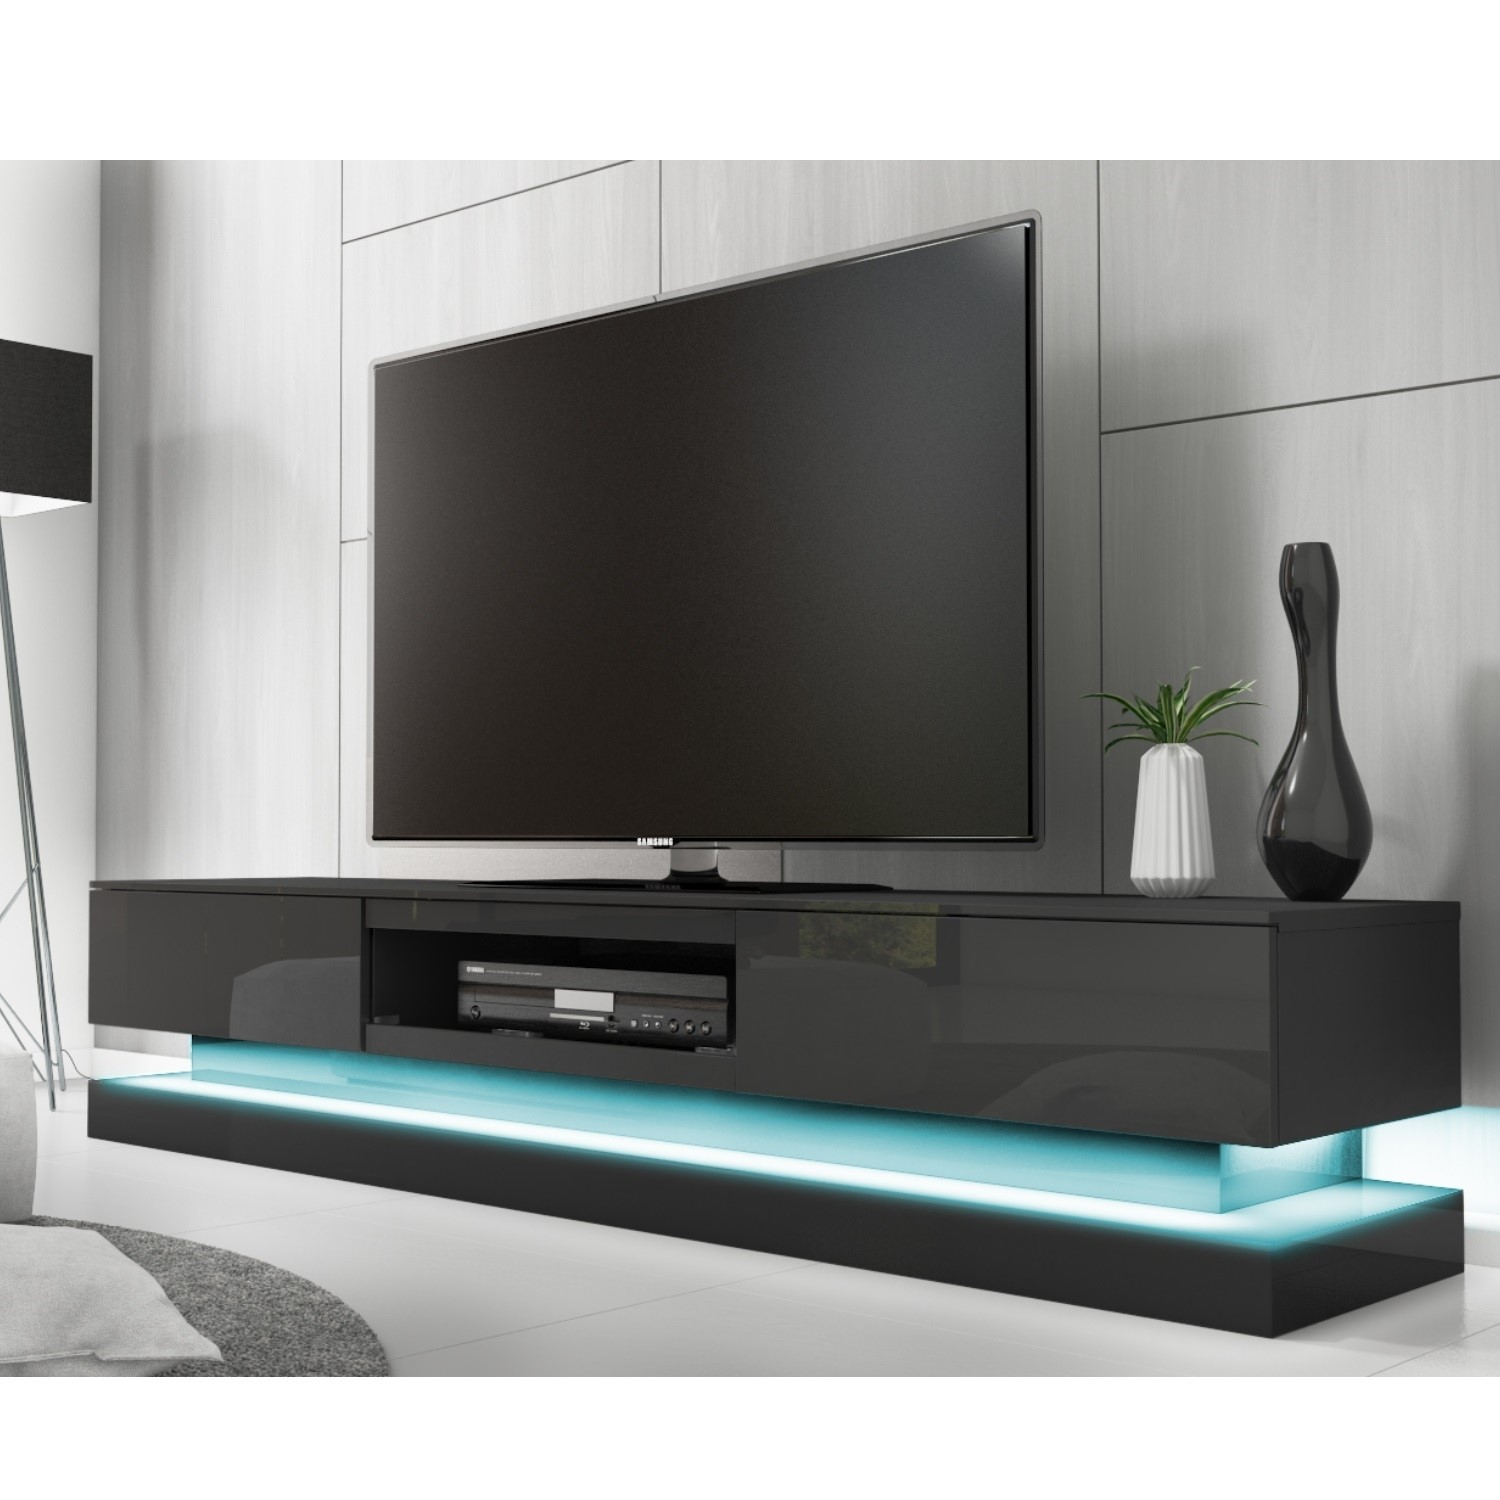 evoque large grey high gloss tv unit with lower led lighting rh furniture123 co uk  white gloss tv units